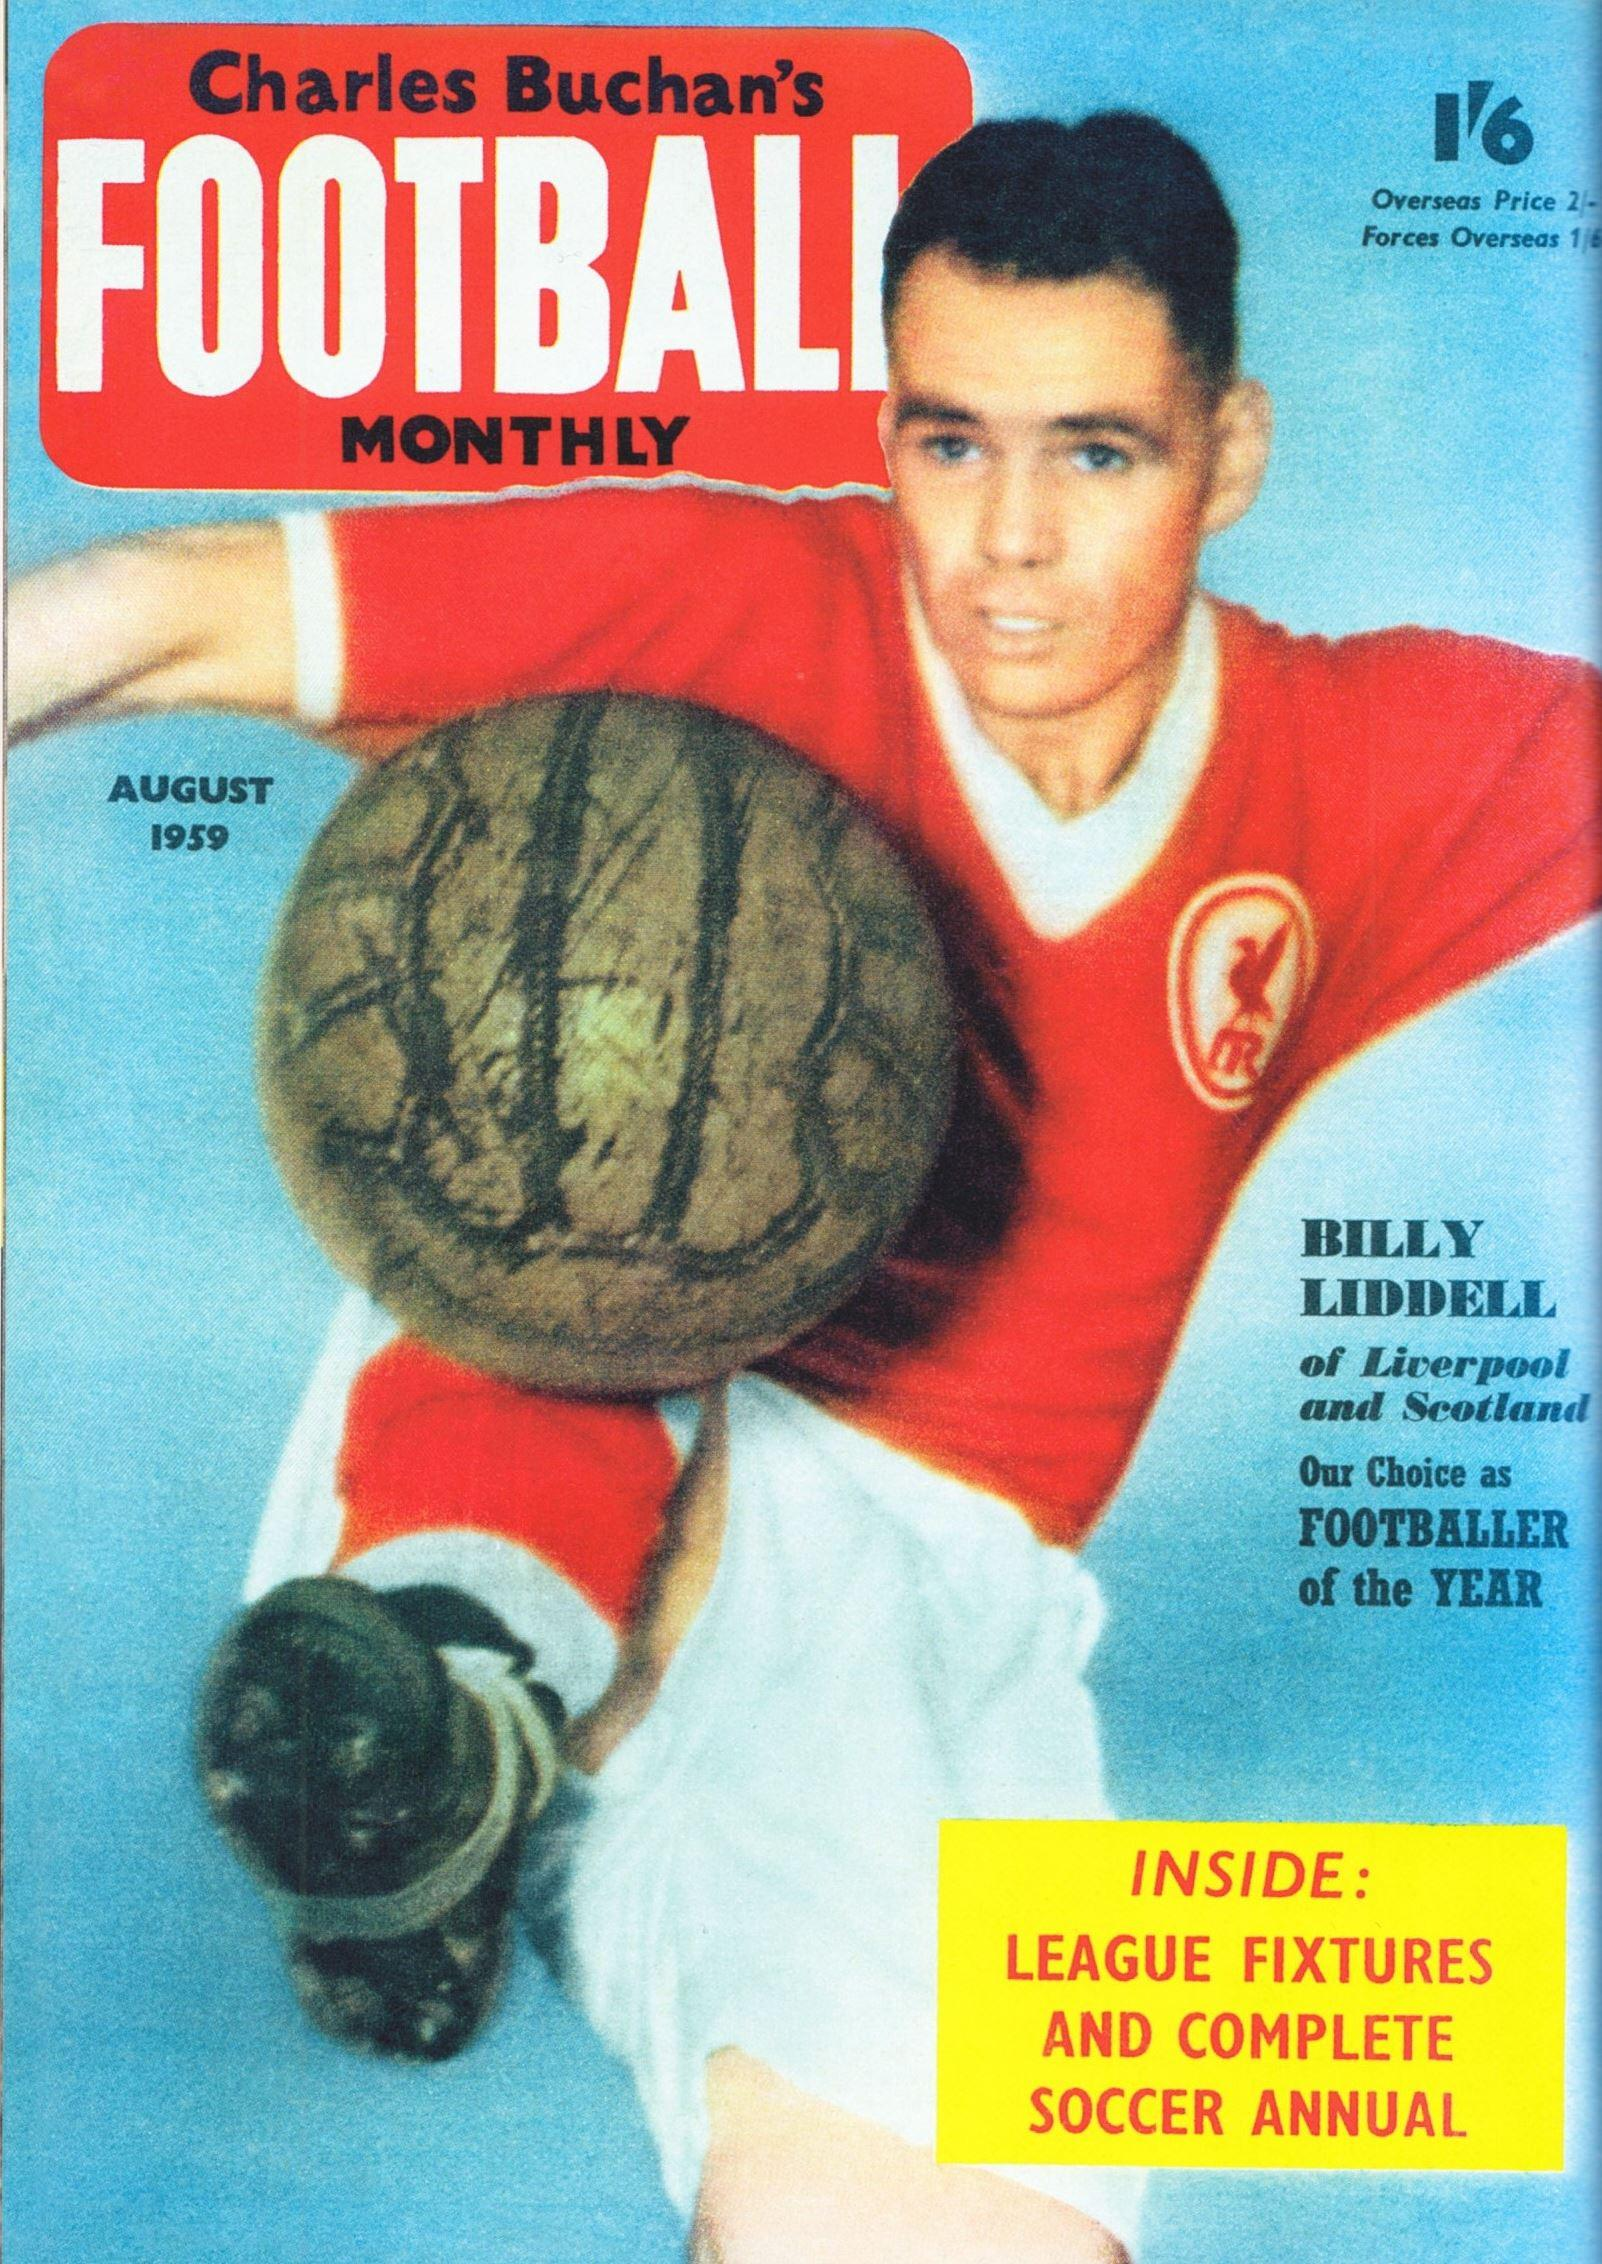 All information about everton (premier league) ➤ current squad with market values ➤ transfers ➤ rumours ➤ player stats ➤ fixtures ➤ news. Liverpool career stats for Billy Liddell - LFChistory